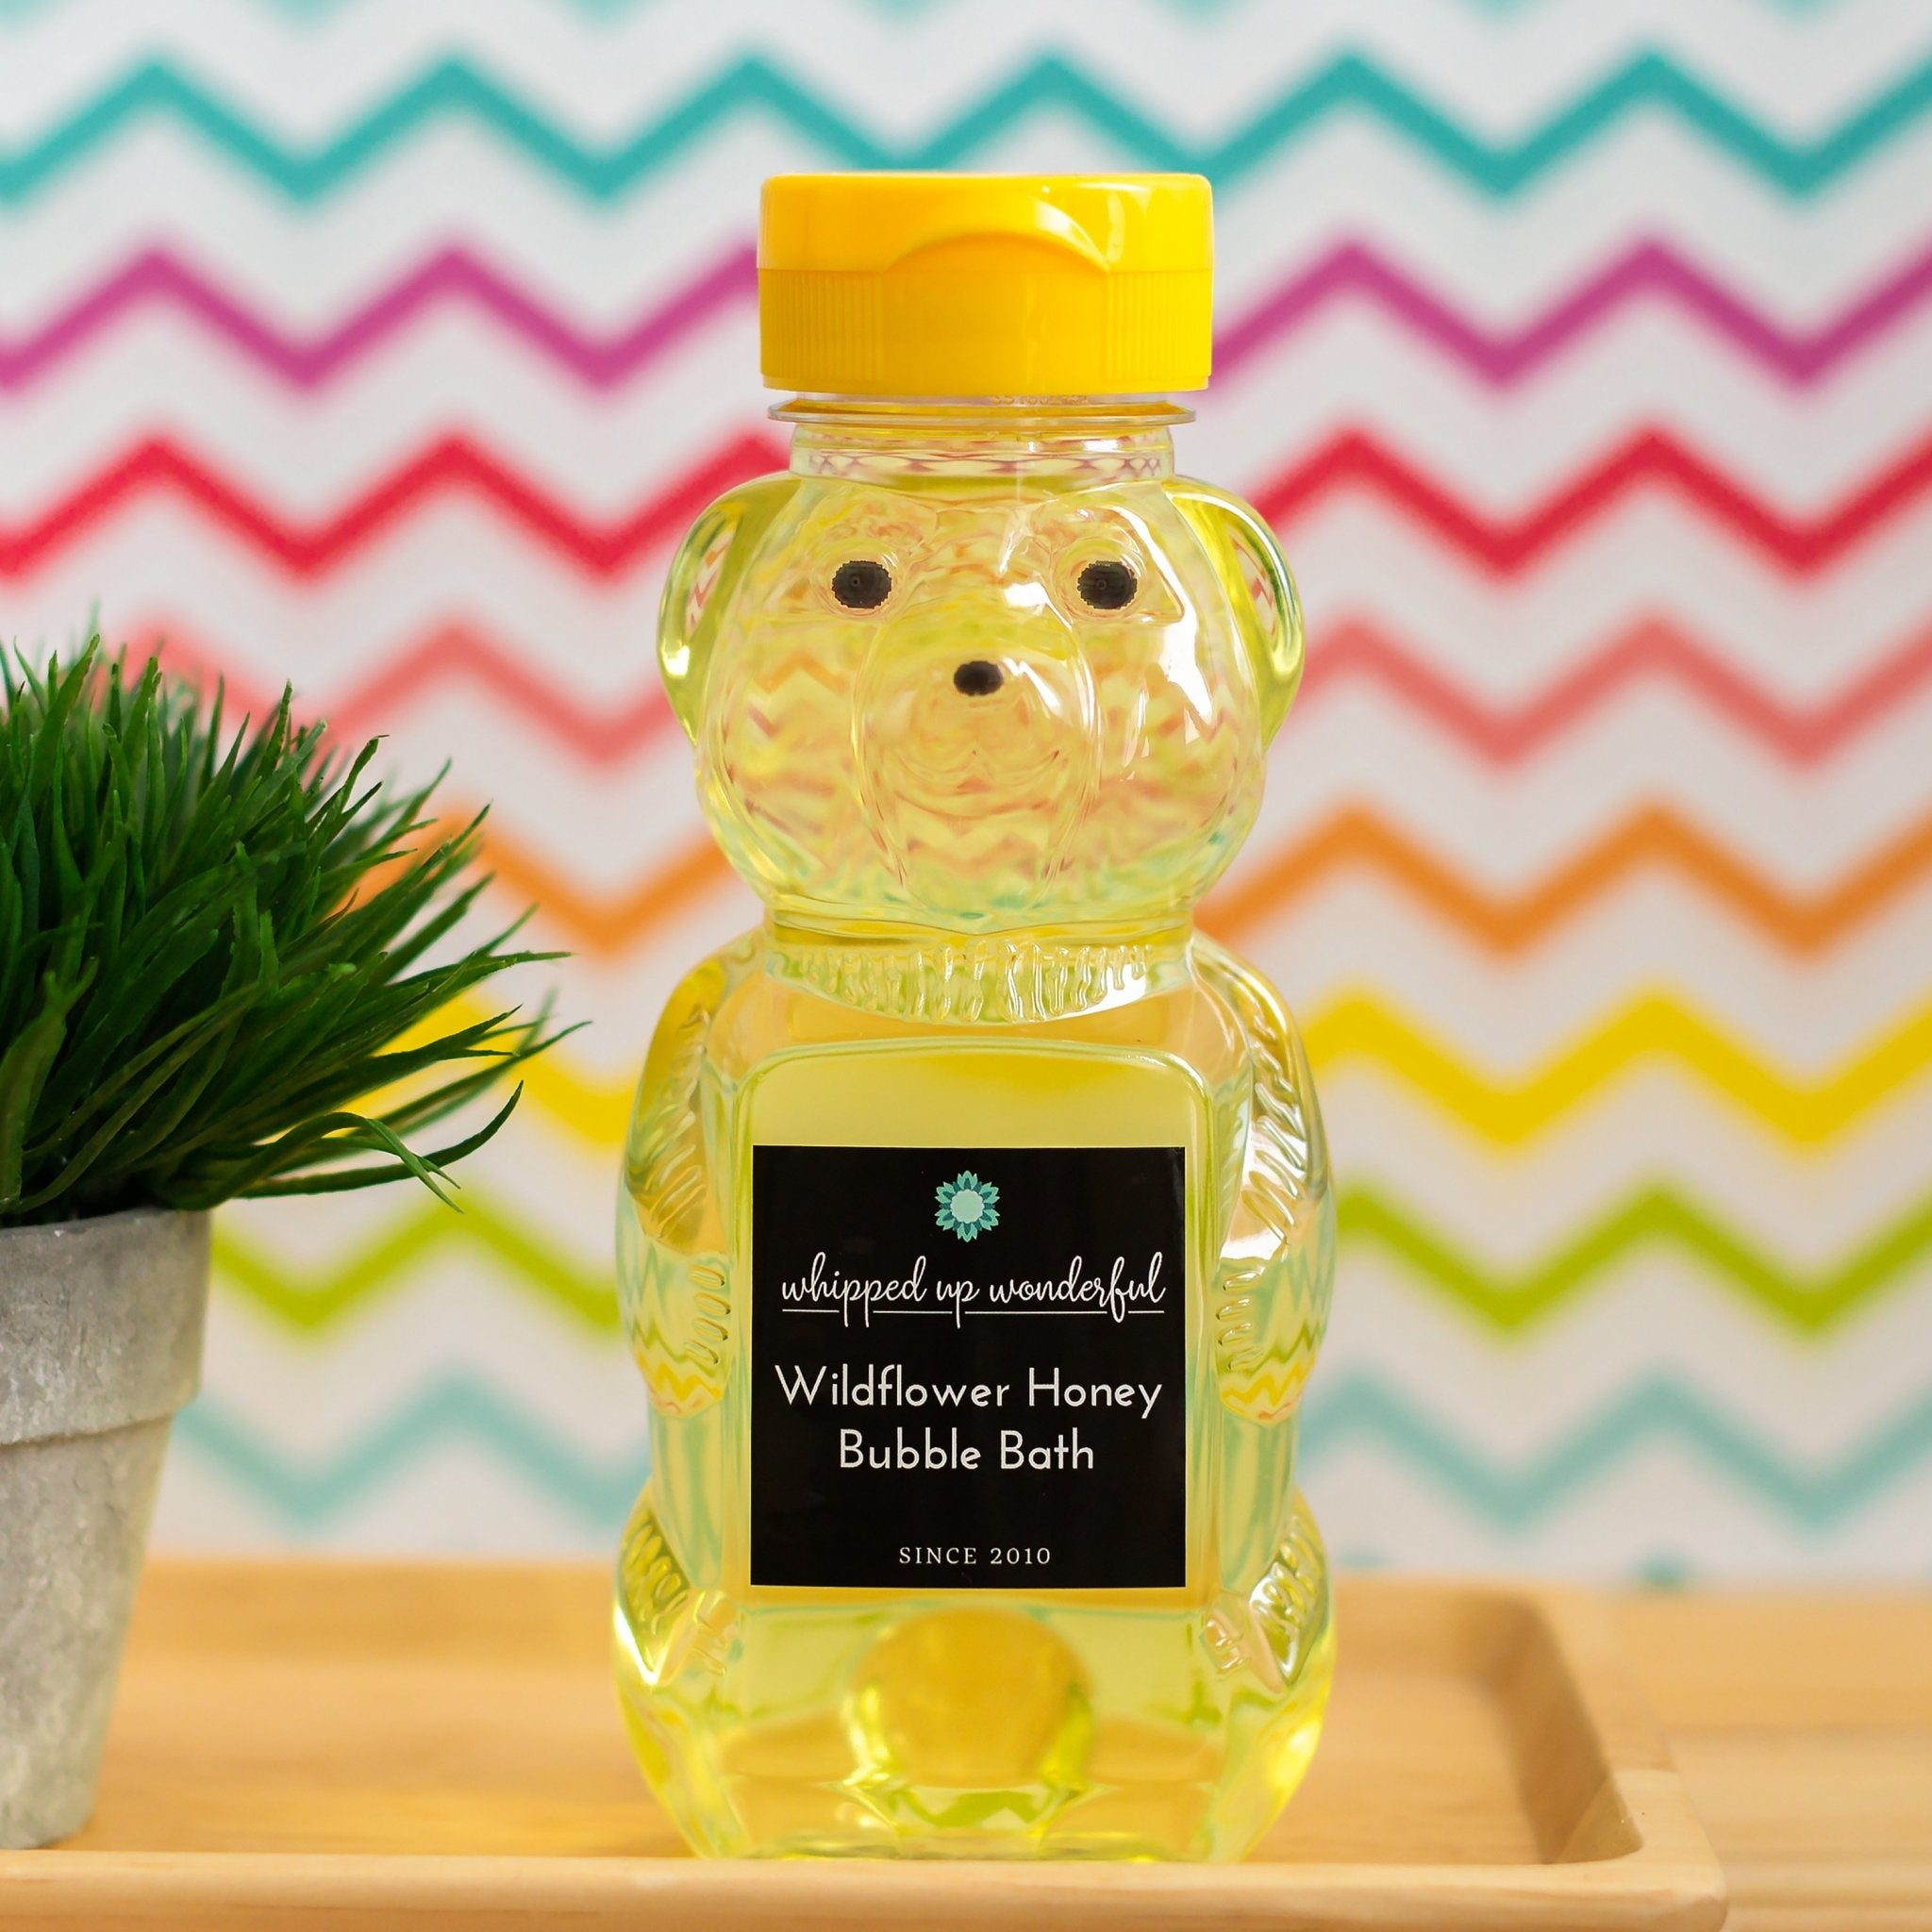 Wildflower Honey Body Wash & Bubble Bath - Whipped Up Wonderful